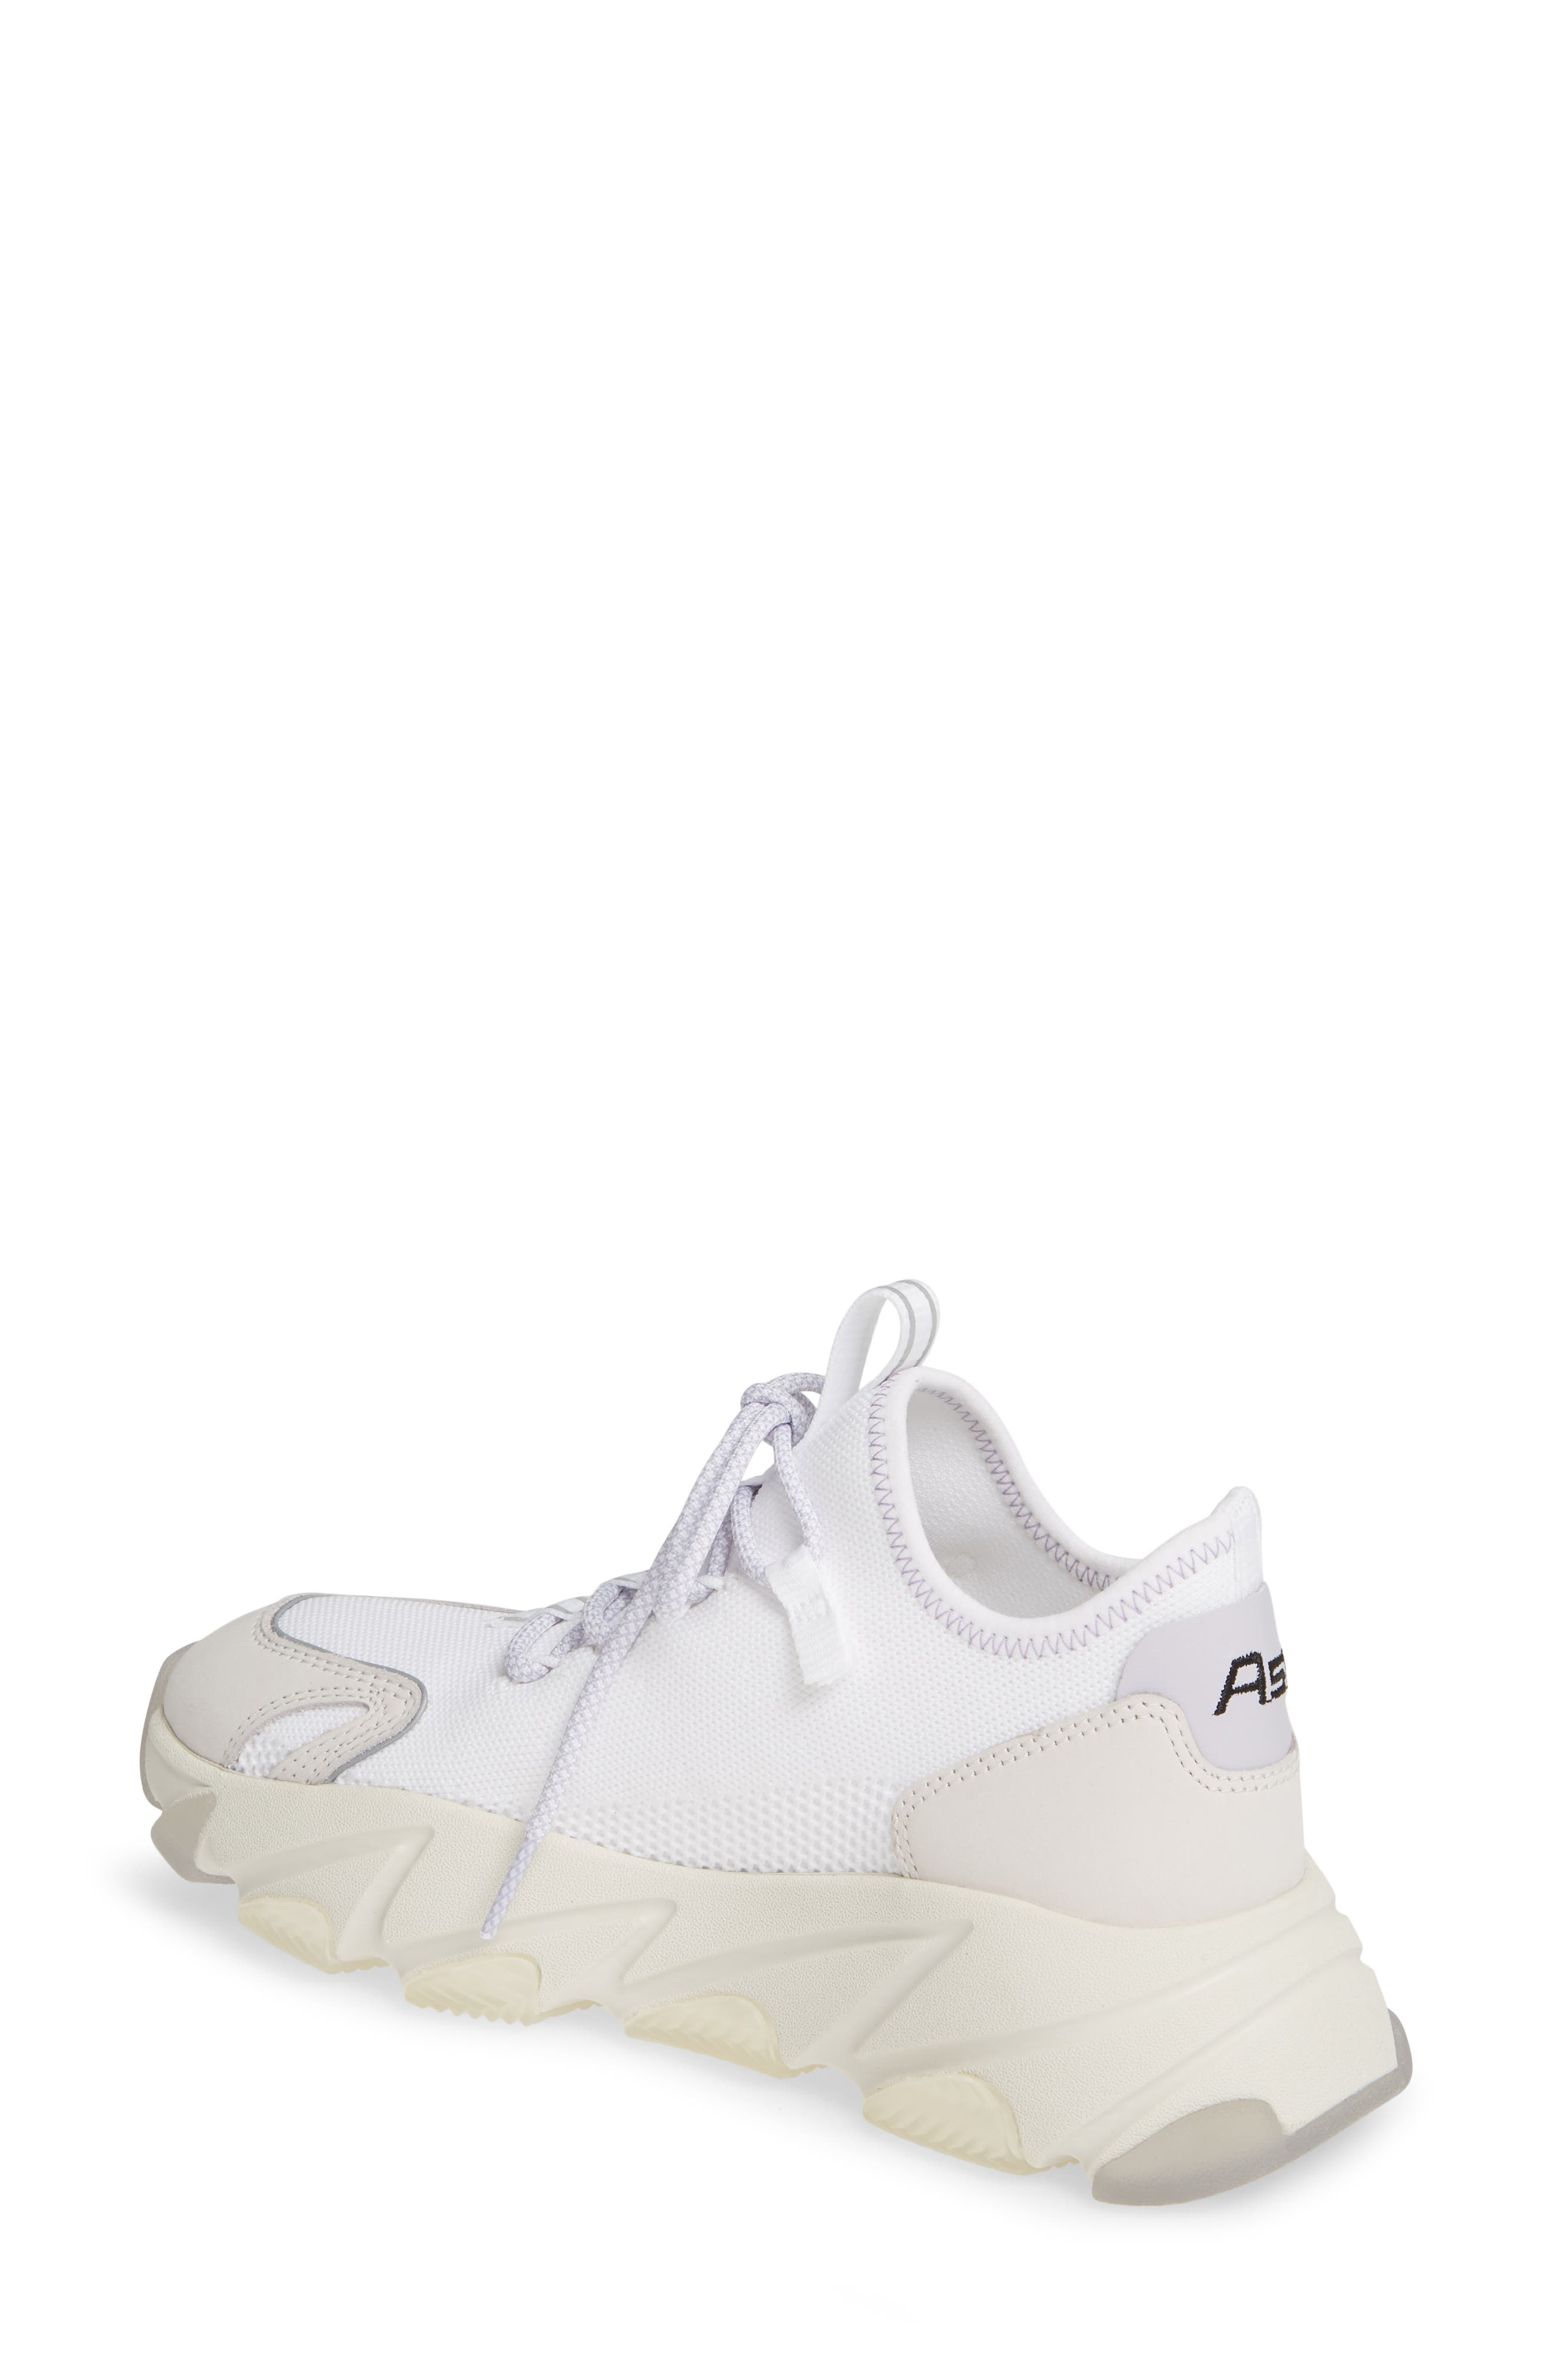 ASH, Excape Sneaker, Alternate thumbnail 2, color, WHITE/ SILVER/ LAVENDER FABRIC